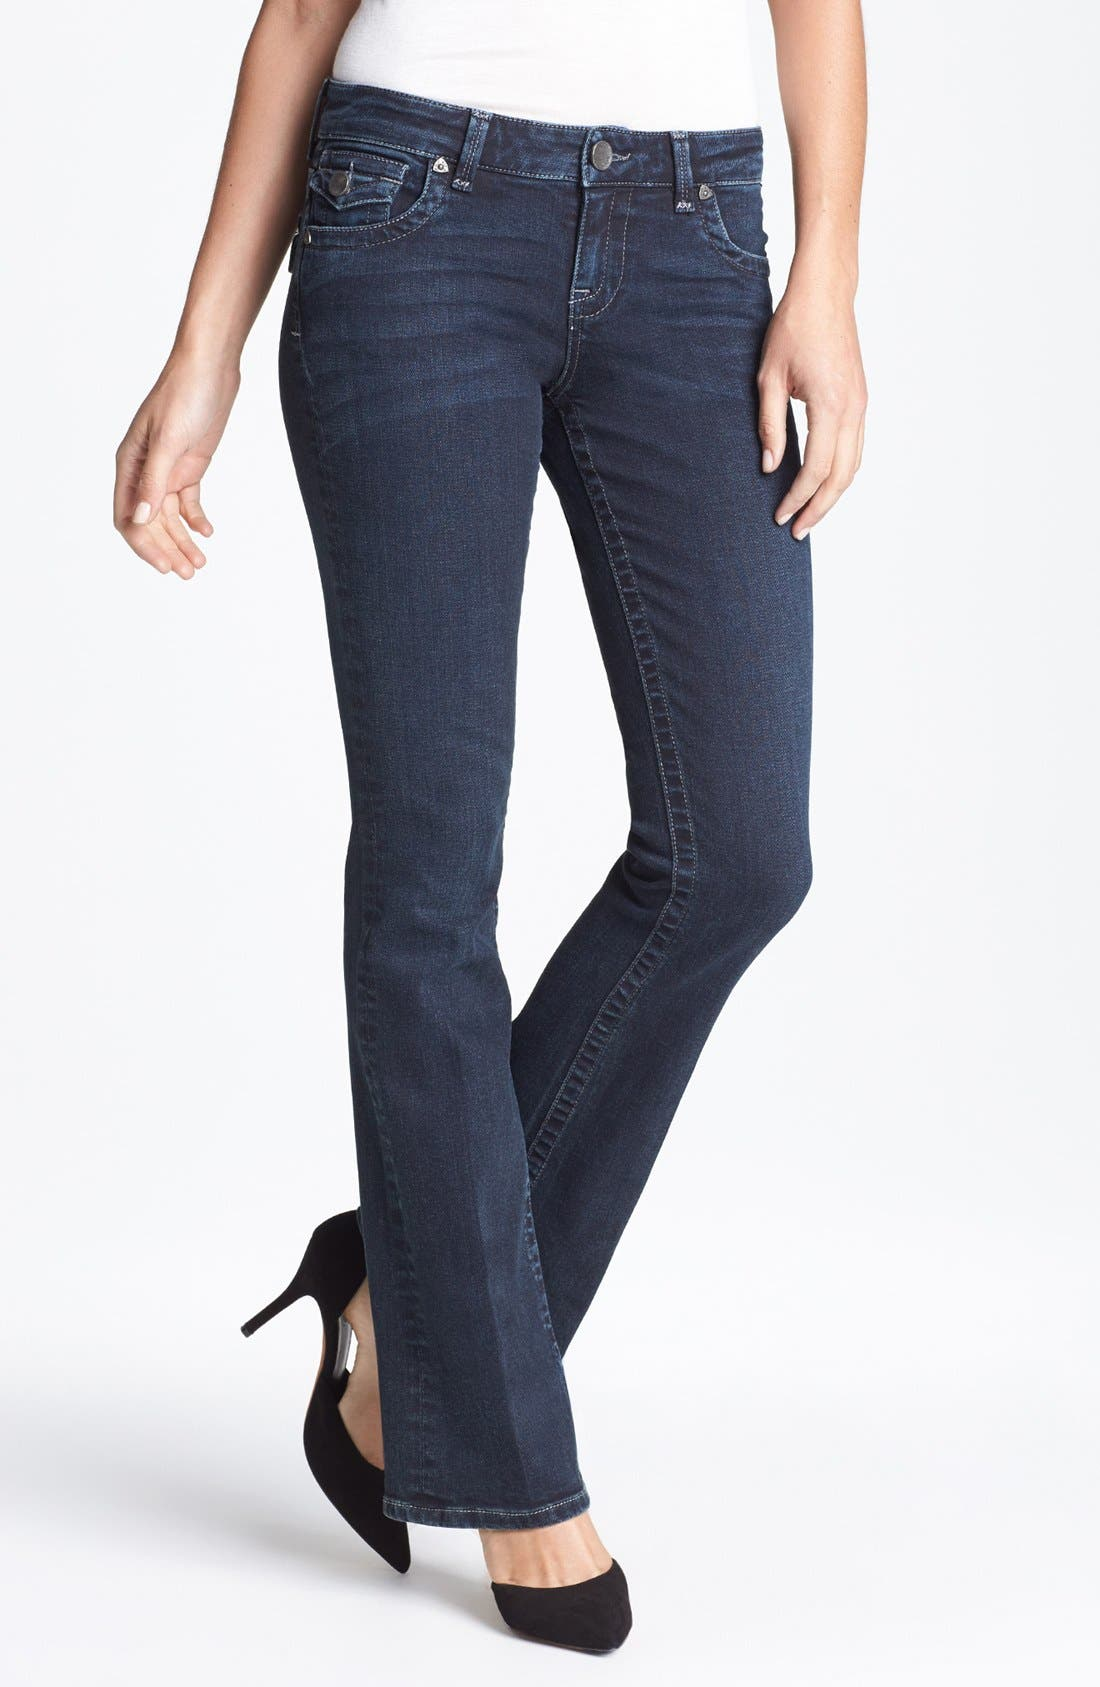 Alternate Image 1 Selected - KUT from the Kloth 'Natalie' Bootcut Jeans (Conquer)